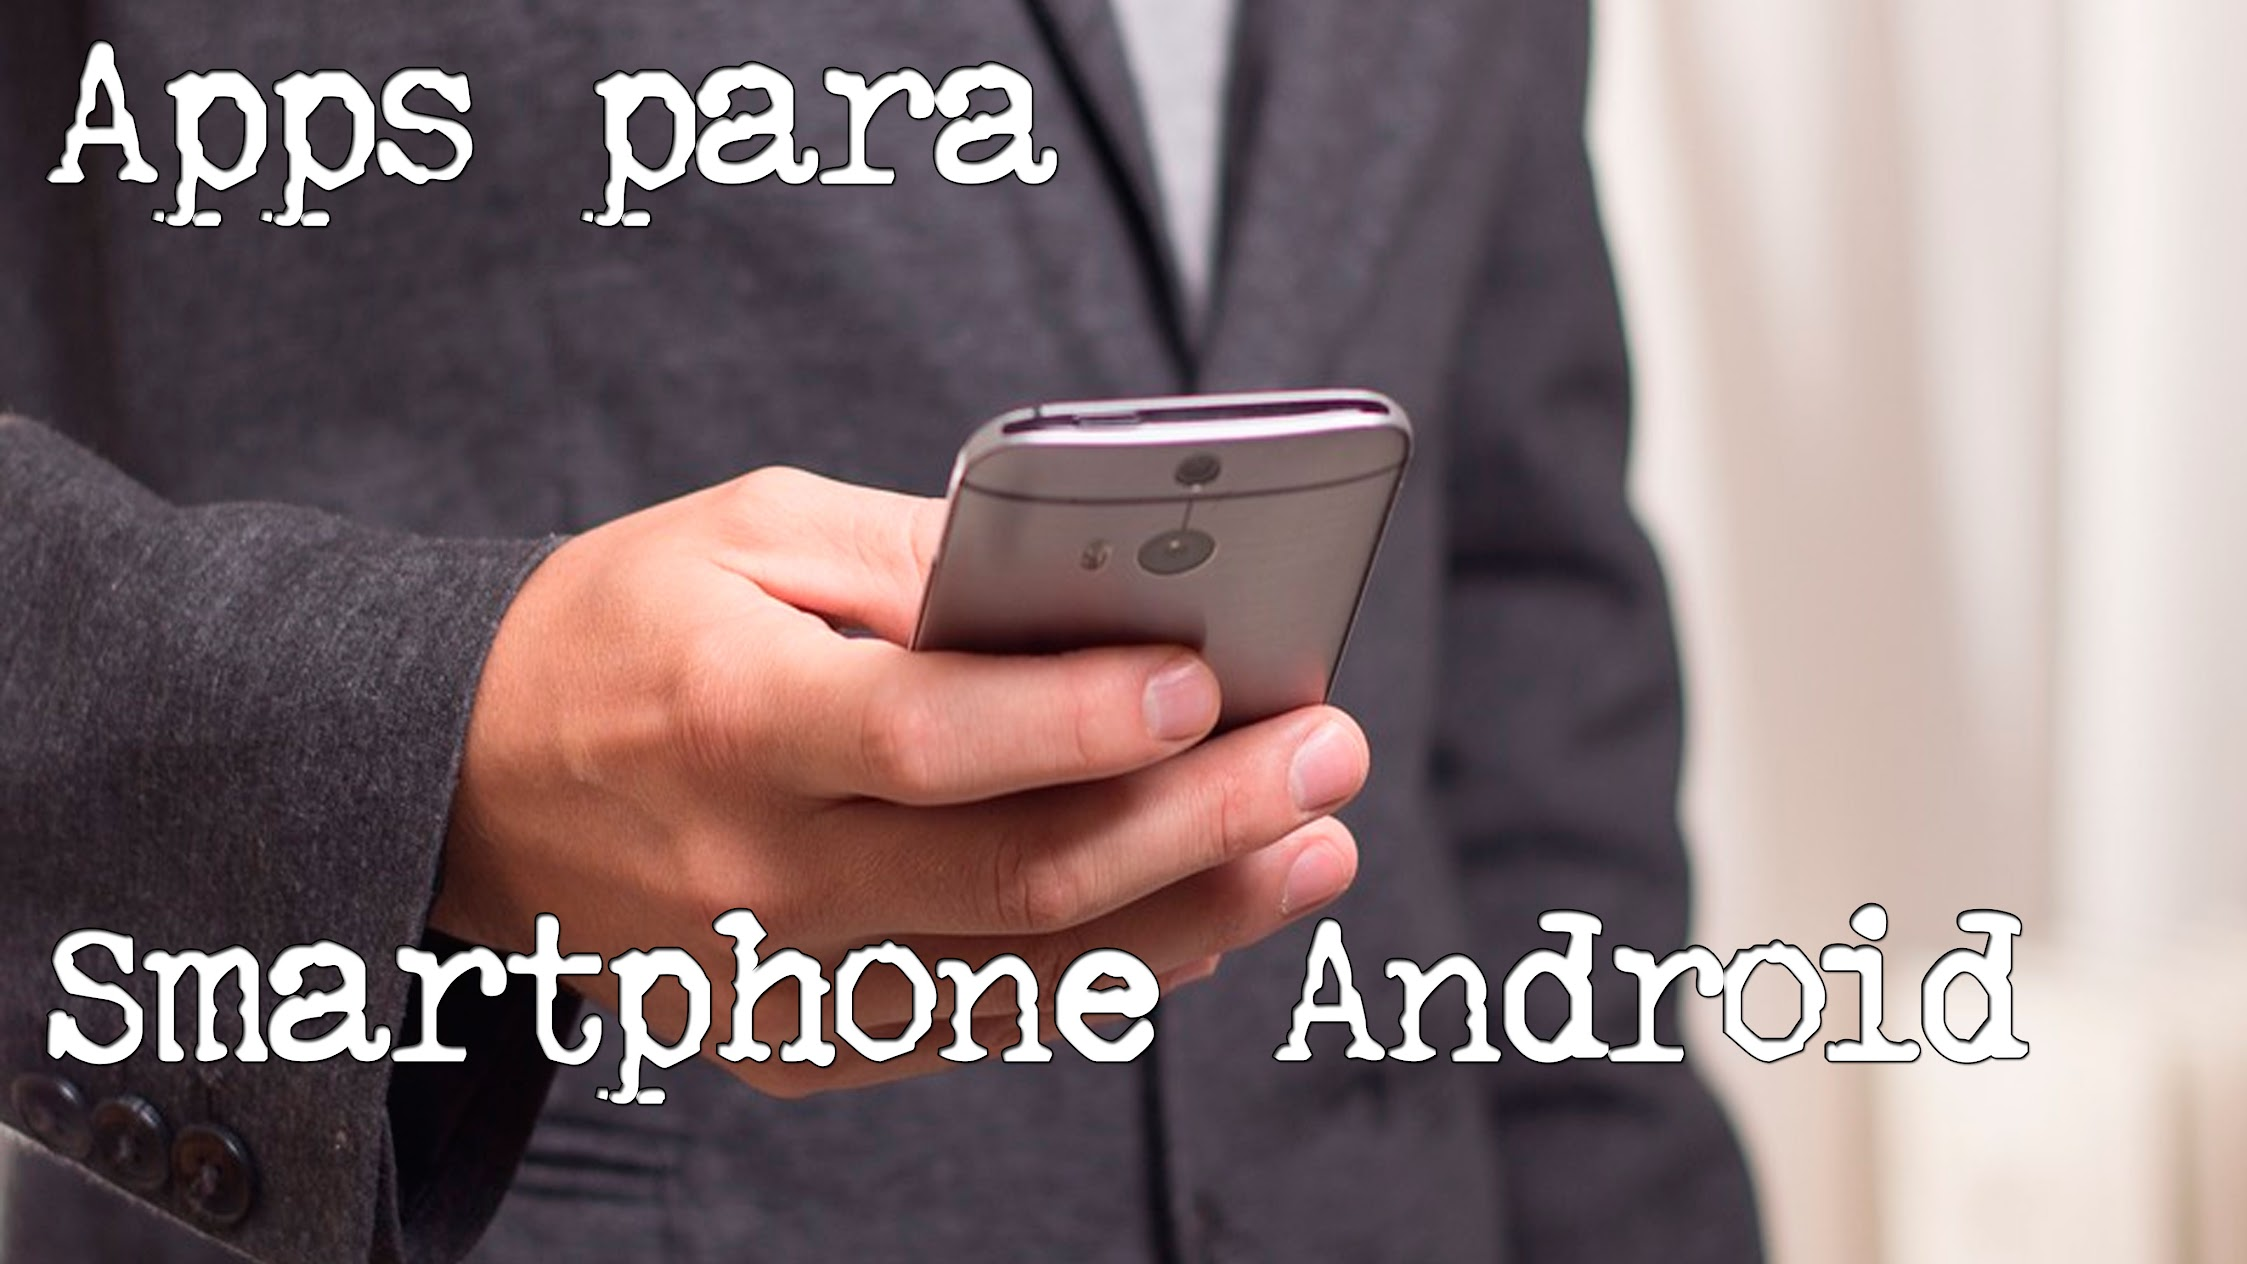 App para smartphone Android